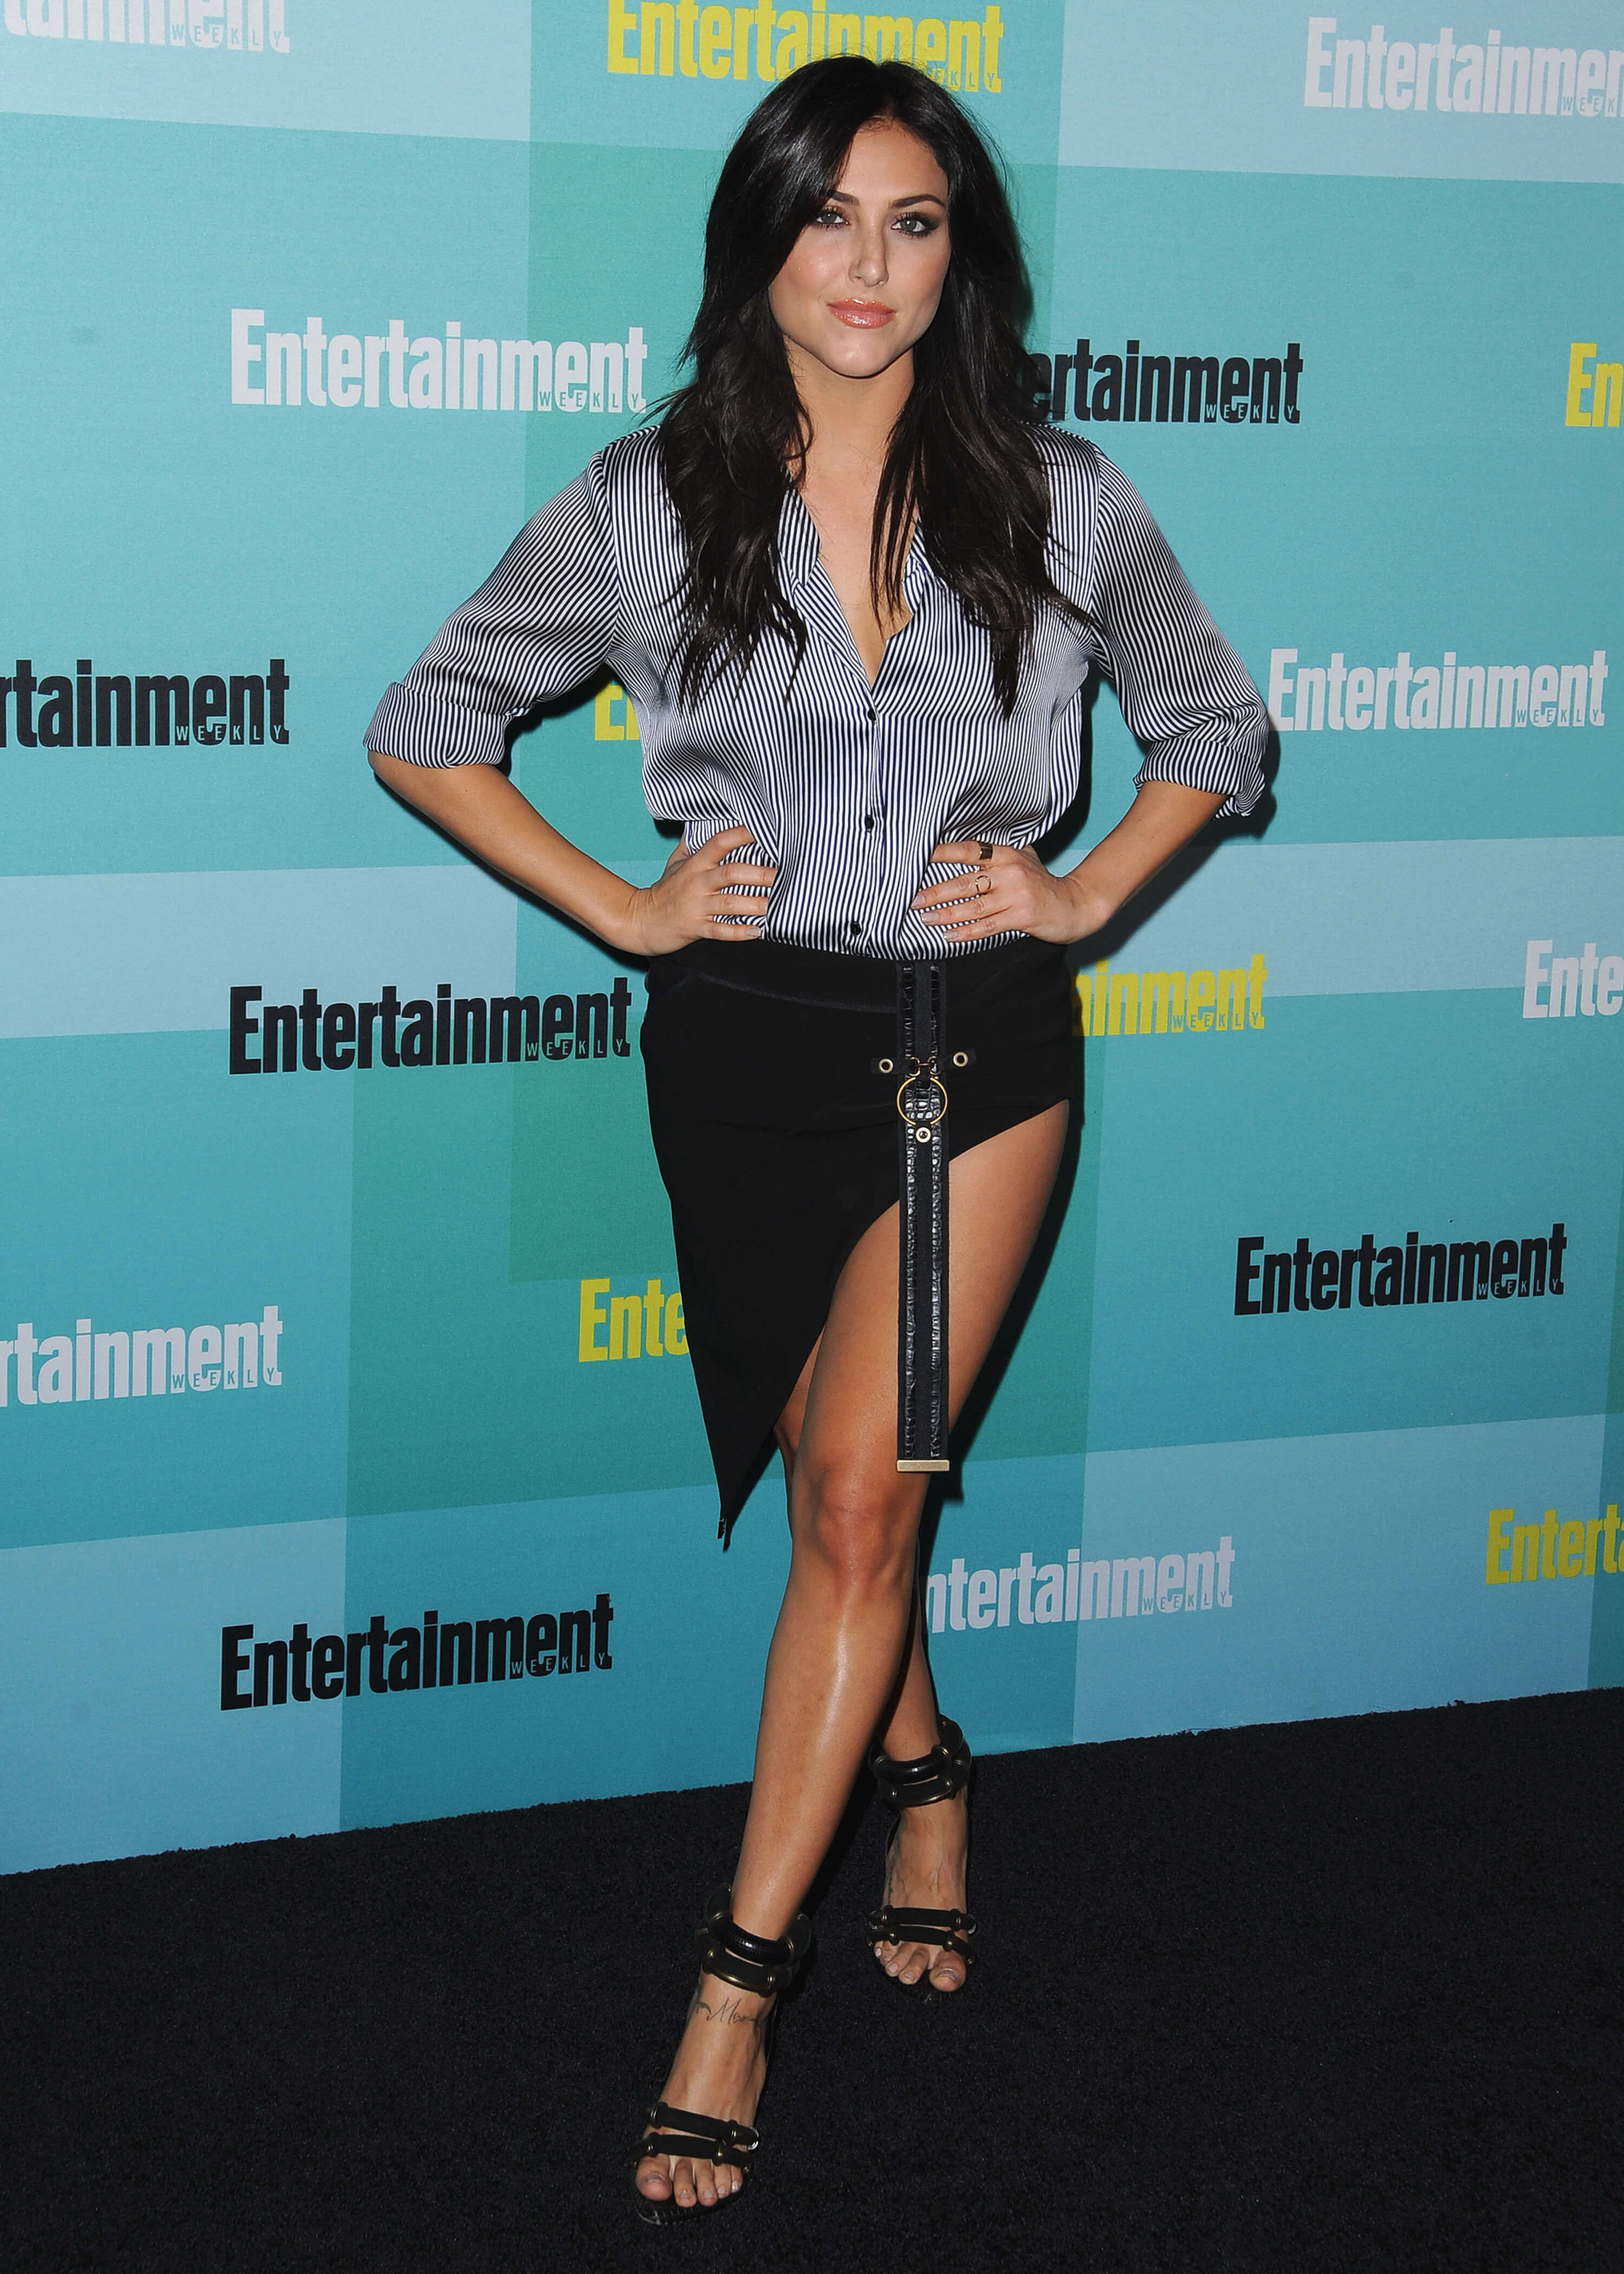 Cassie-Scerbo thighs awesome pic (2)